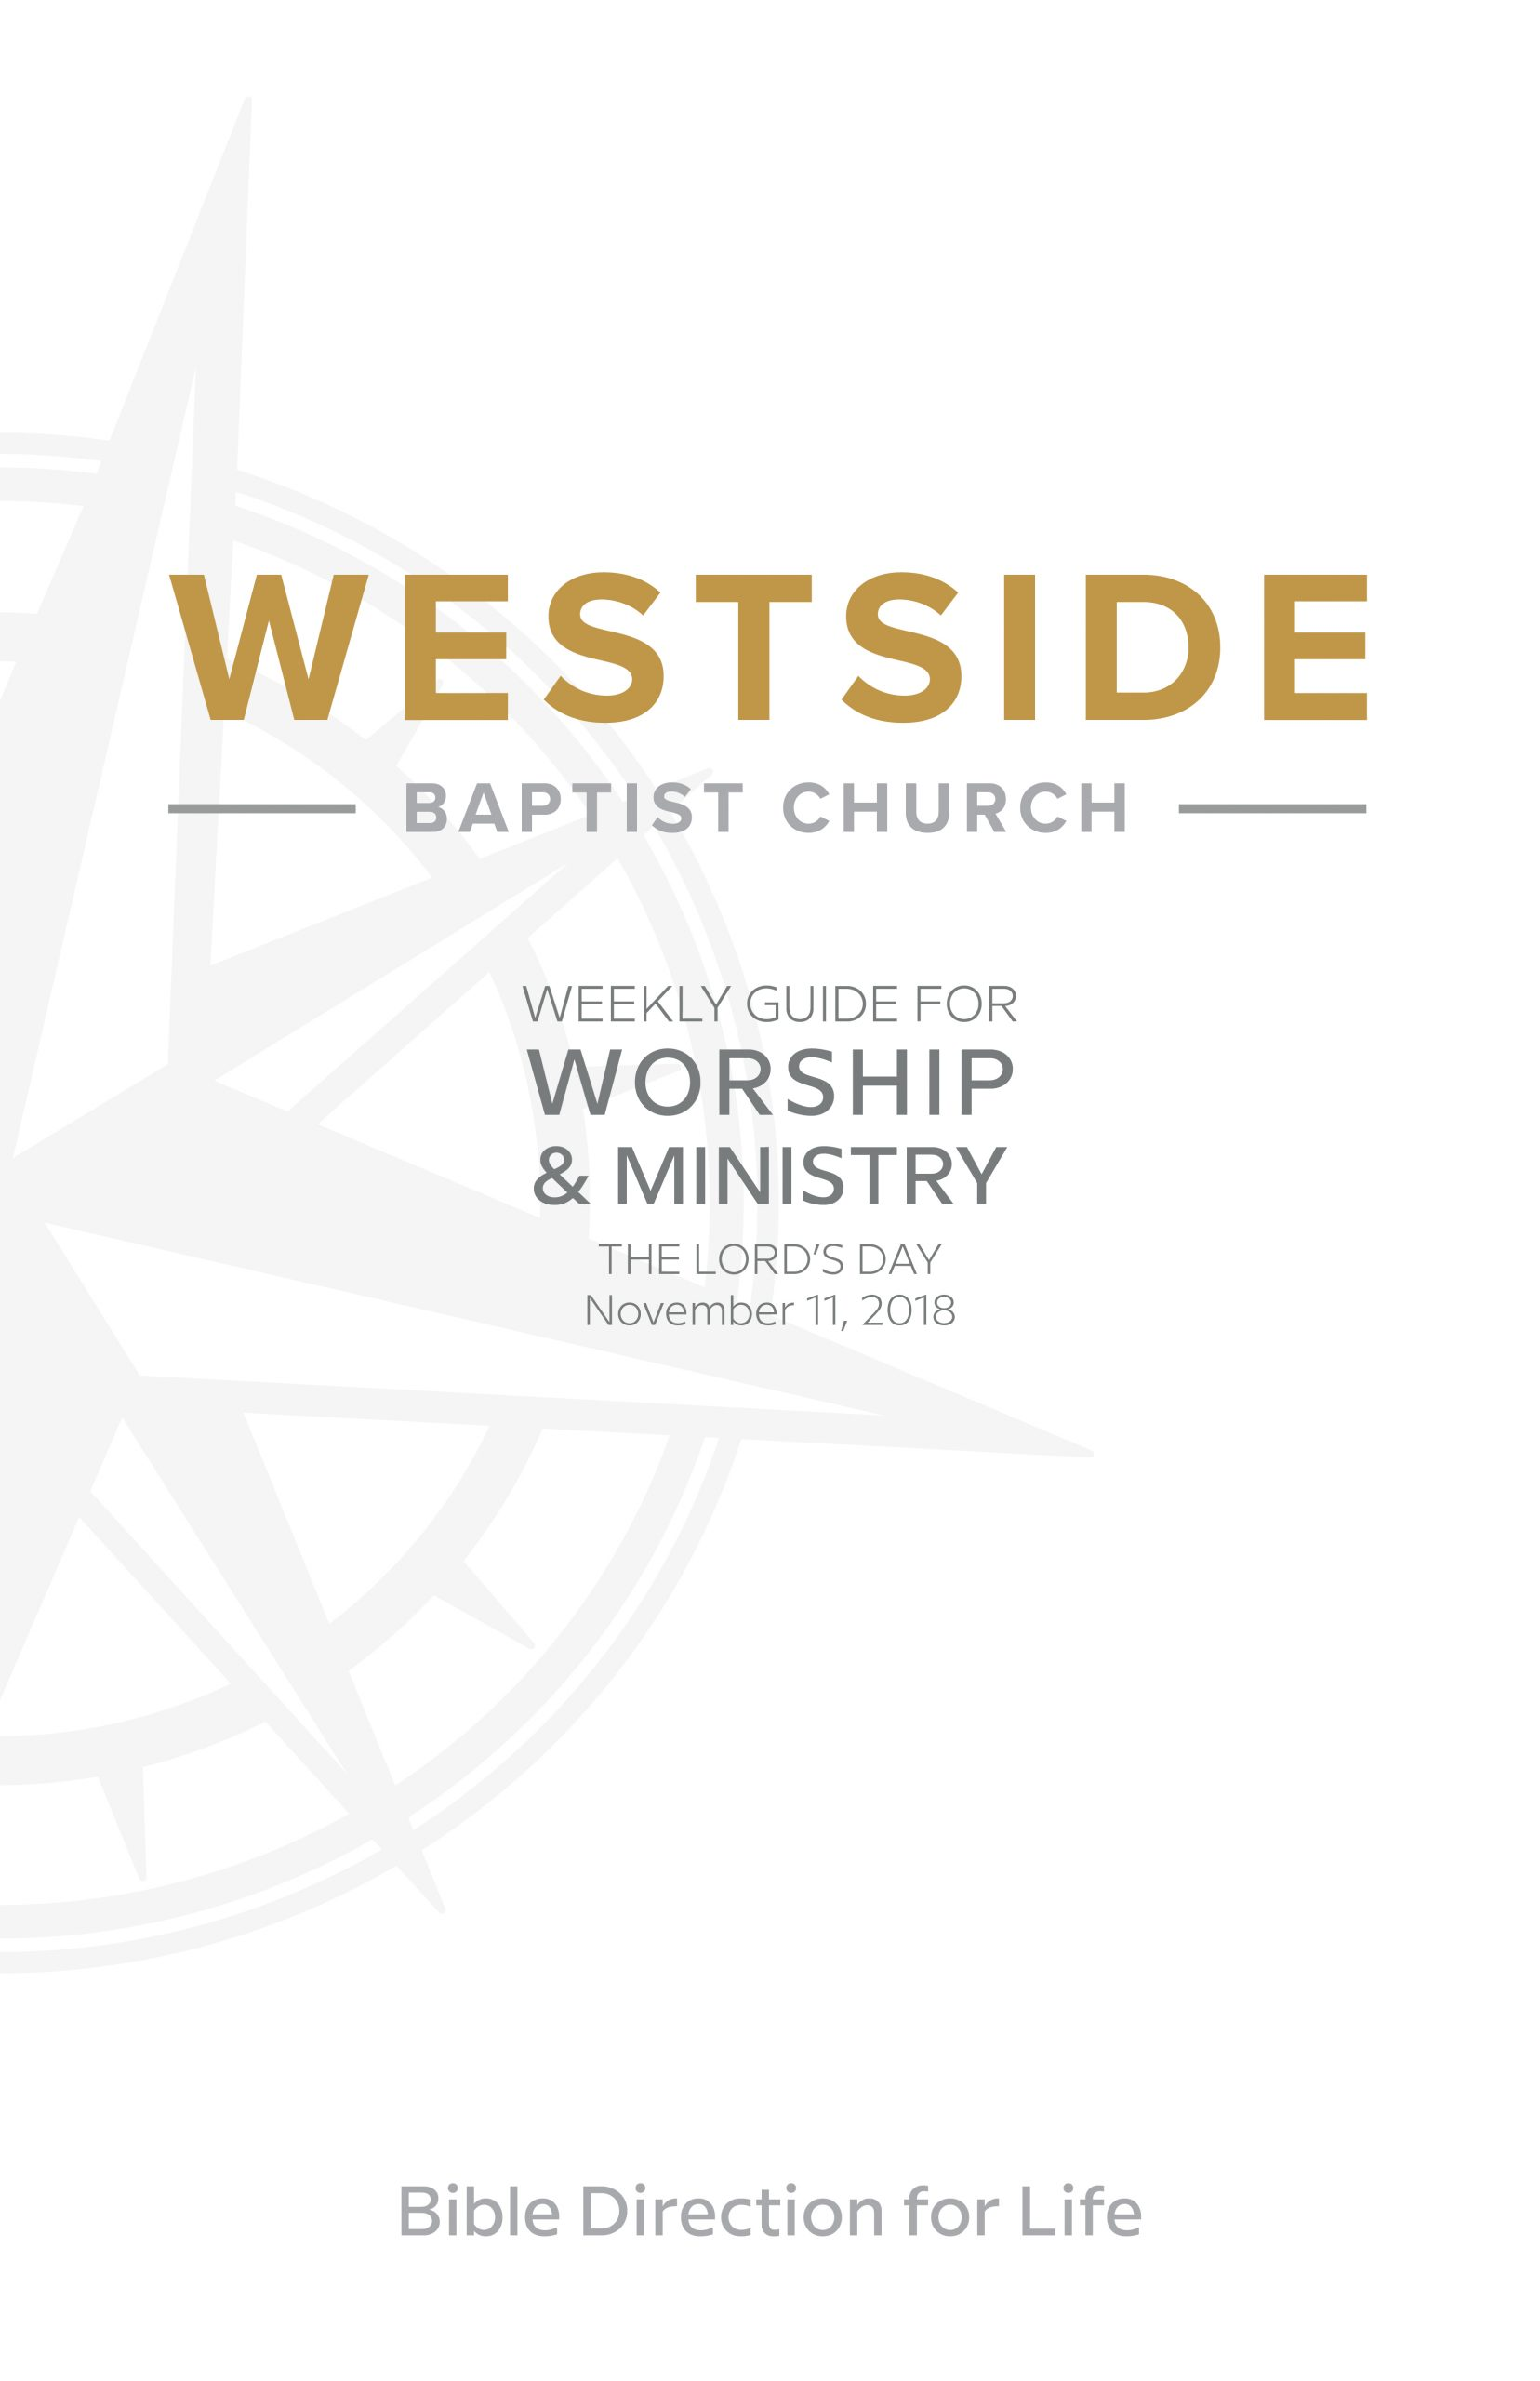 Weekly Guide for Worship and Ministry—November 11